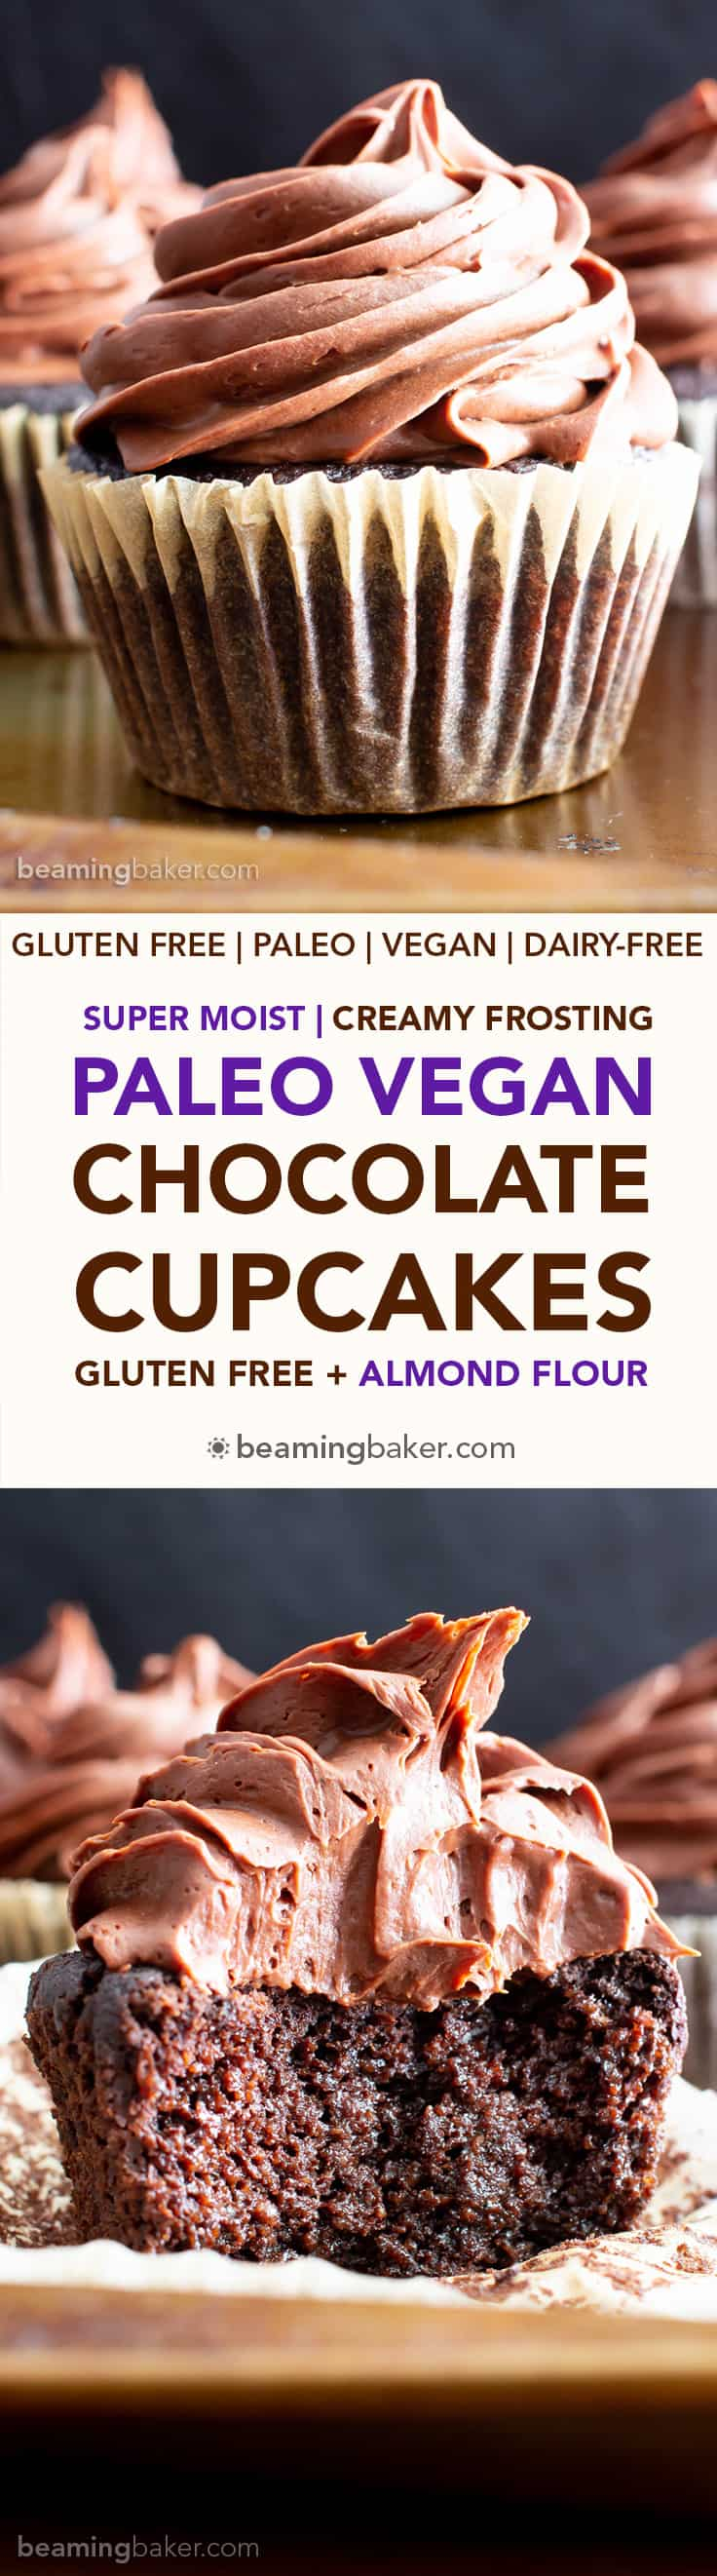 Paleo Chocolate Cupcakes Recipe (Almond Flour, GF): rich 'n moist vegan gluten free cupcakes topped with creamy chocolate frosting! The best paleo cupcakes—made with gluten free, dairy free, healthy ingredients! #Vegan #Paleo #Cupcakes #GlutenFree #DairyFree | Recipe at BeamingBaker.com